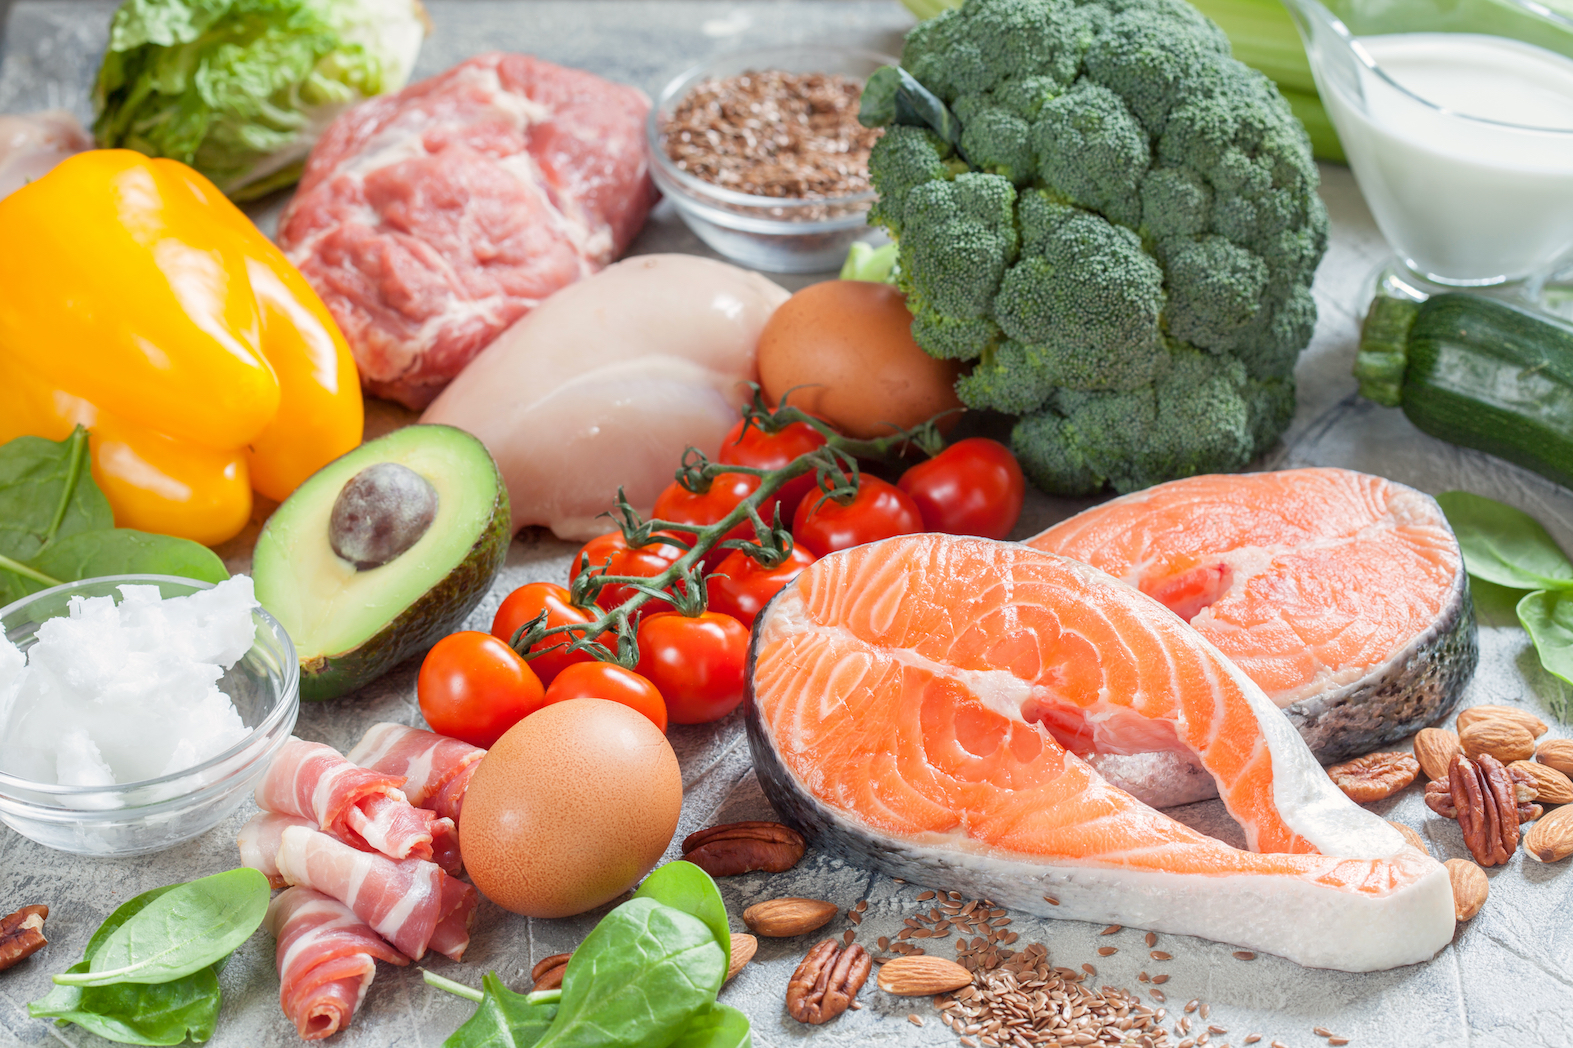 A new study from the European Society of Cardiology (ESC) has revealed that low-carb diets are unsafe and can even be life-threatening.